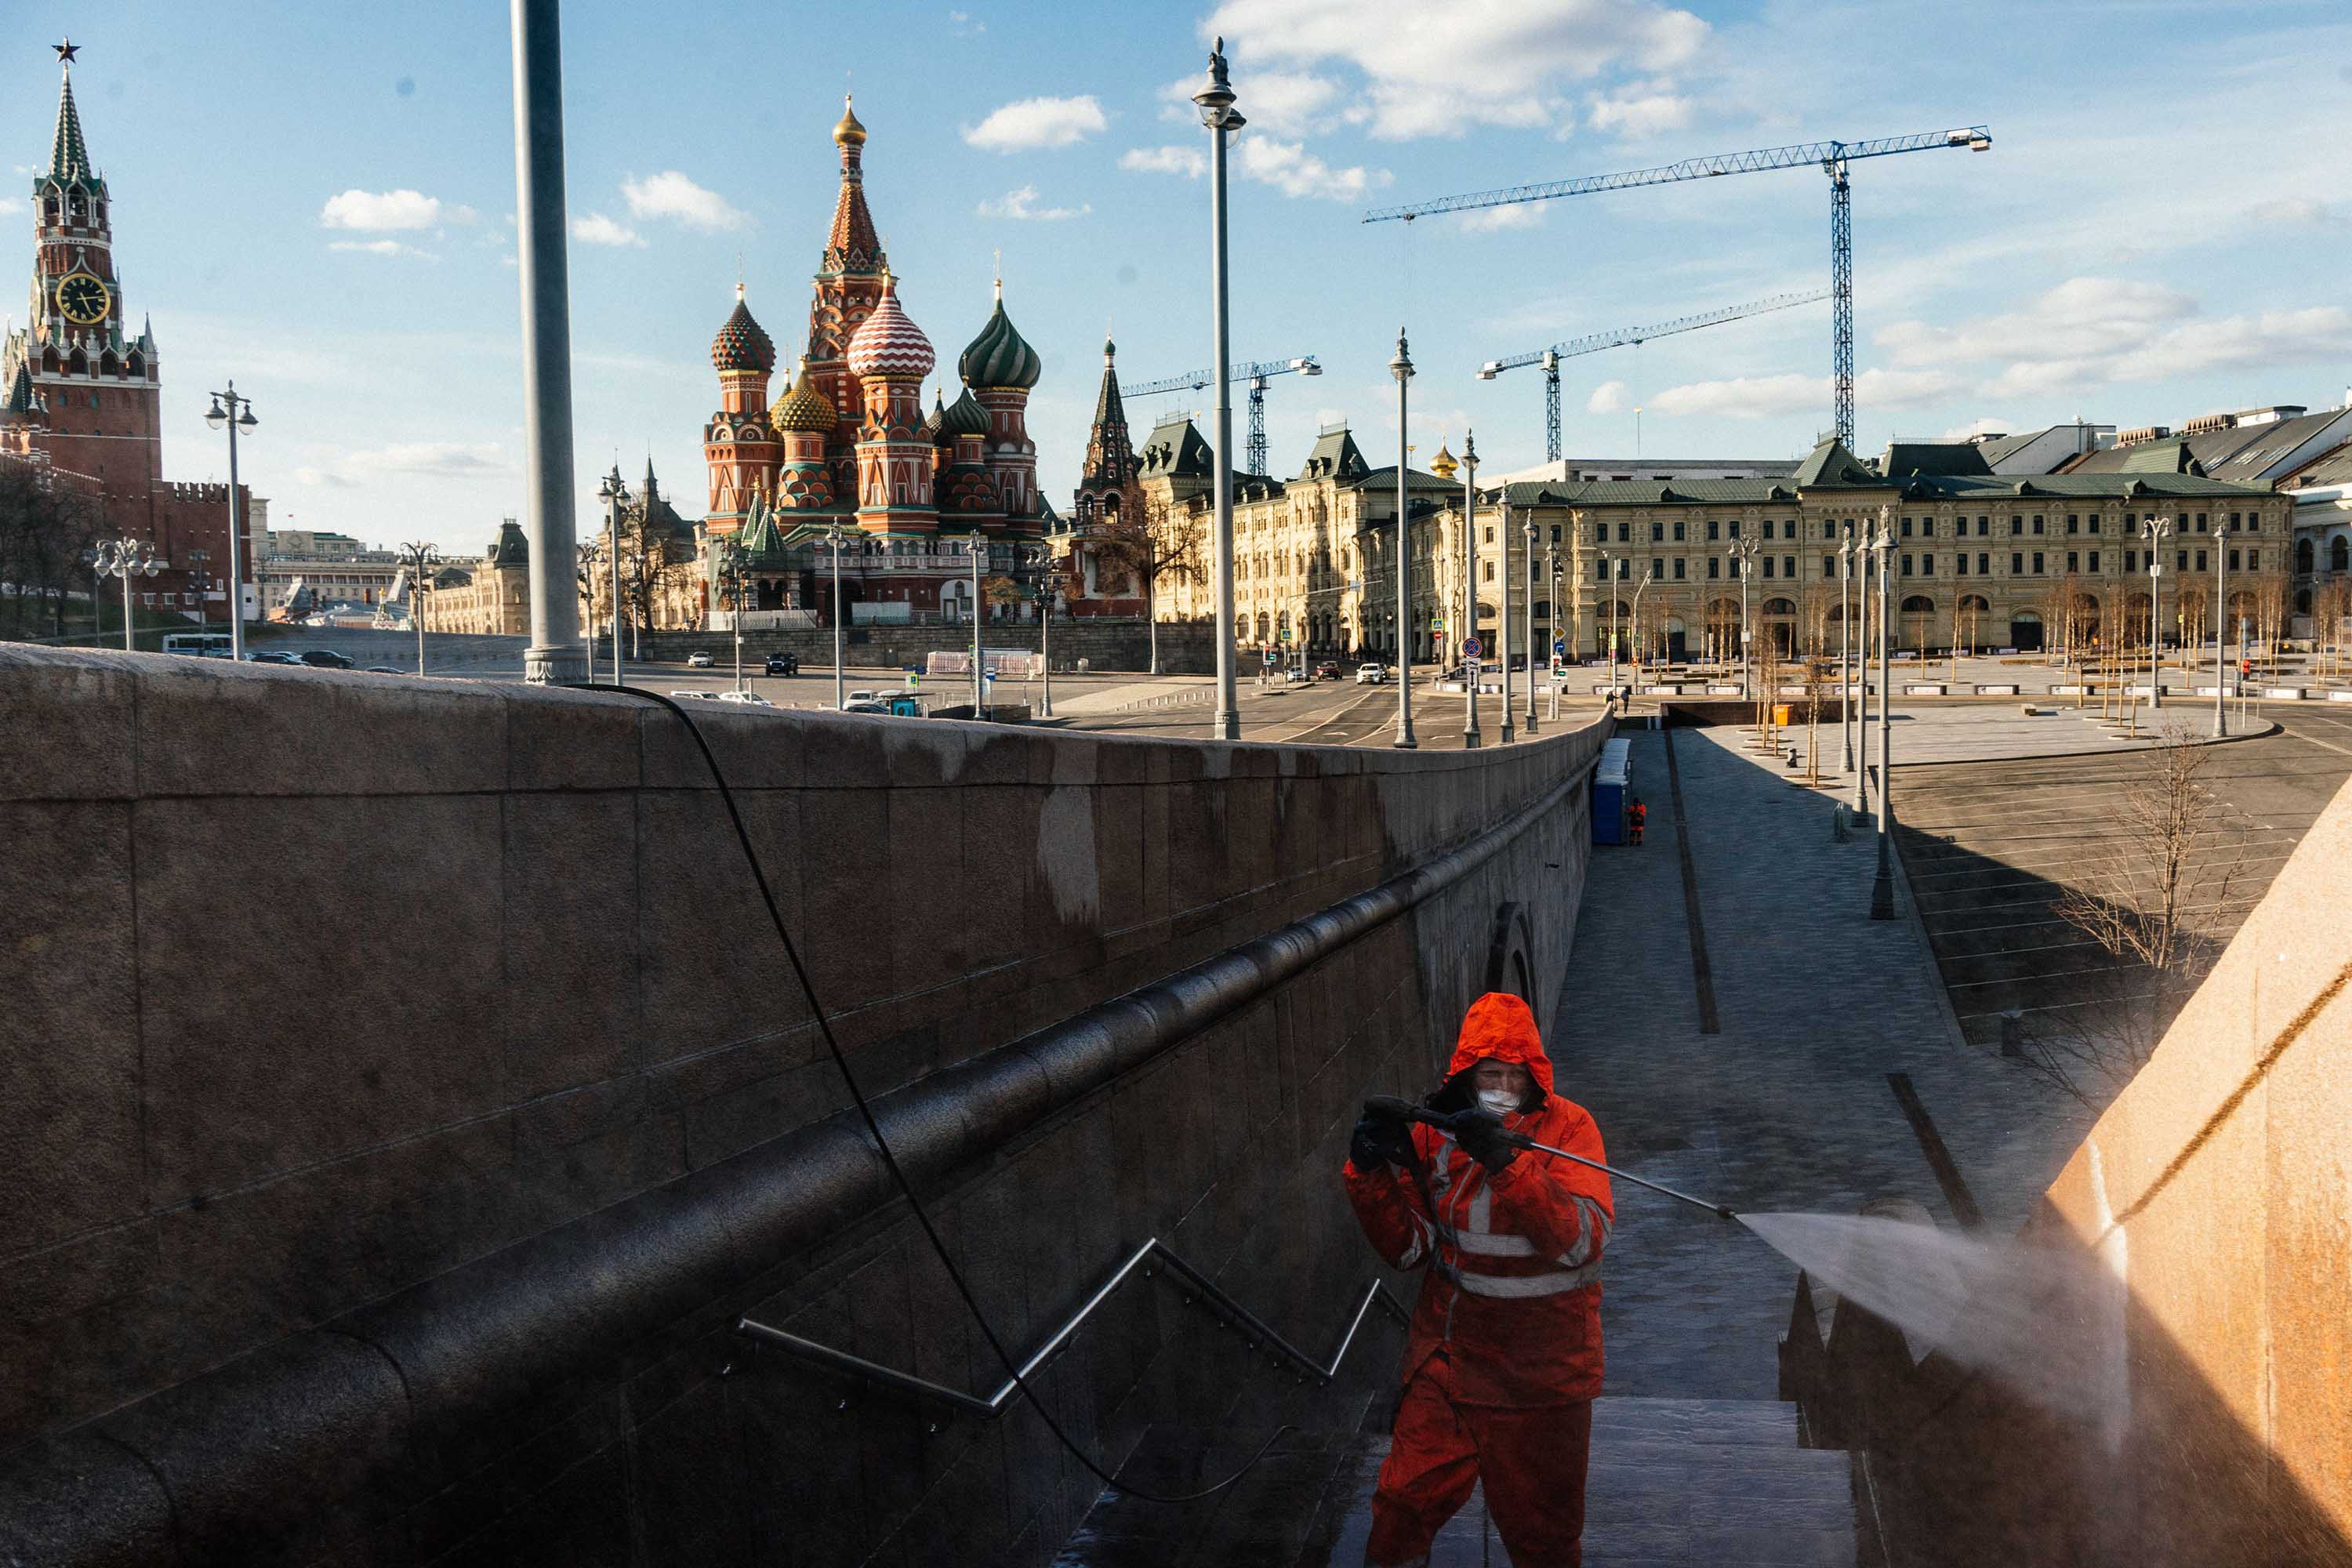 A municipal worker disinfects a bridge near the Kremlin in Moscow on April 12.